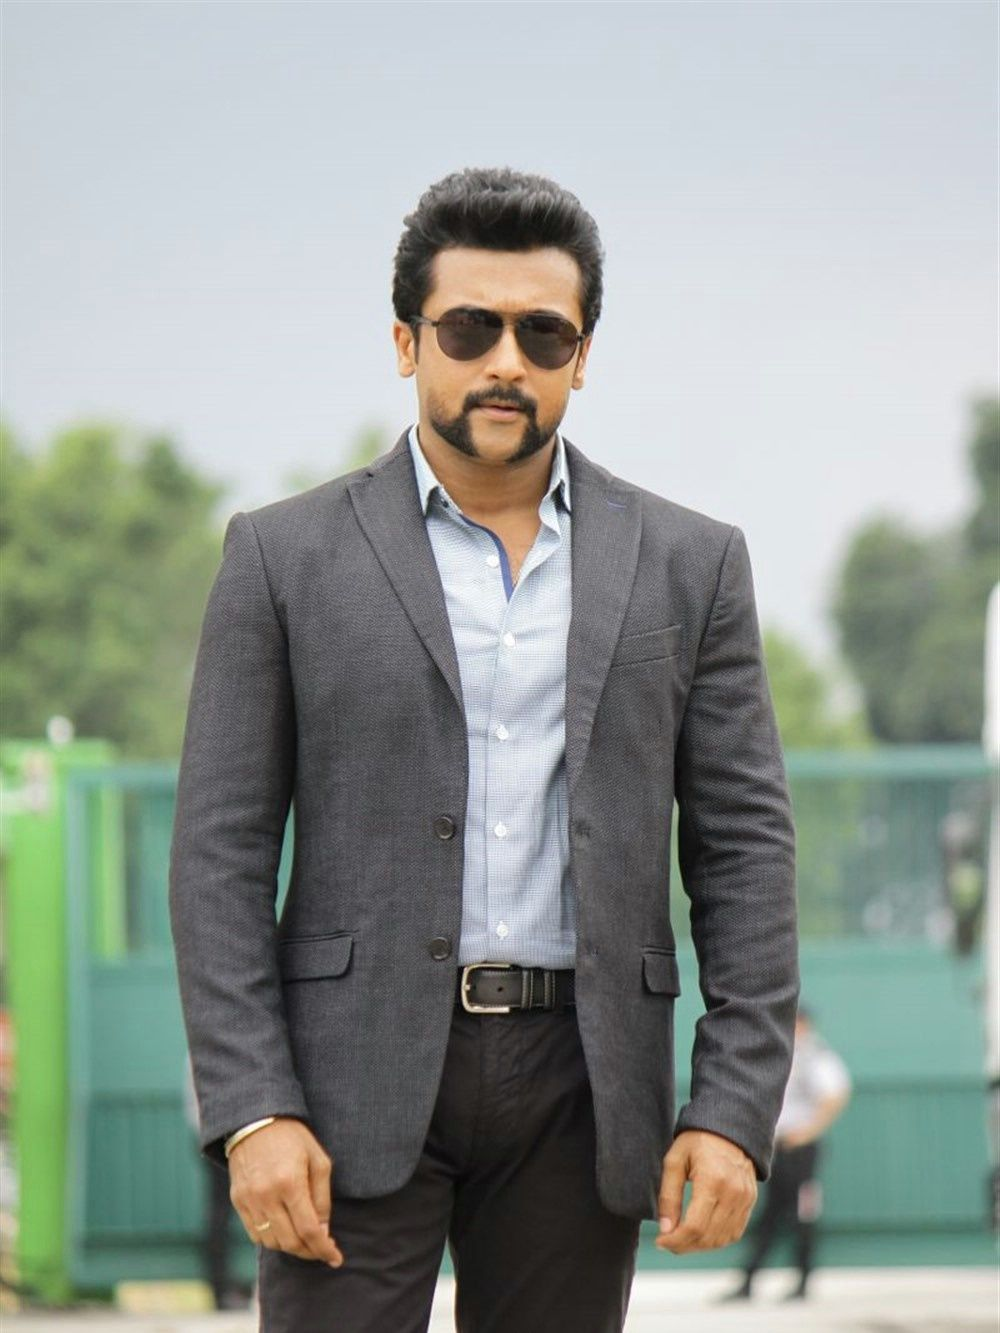 S3 singam 3 tamil movie latest stills hd surya pinterest s3 singam 3 tamil movie latest stills hd altavistaventures Images